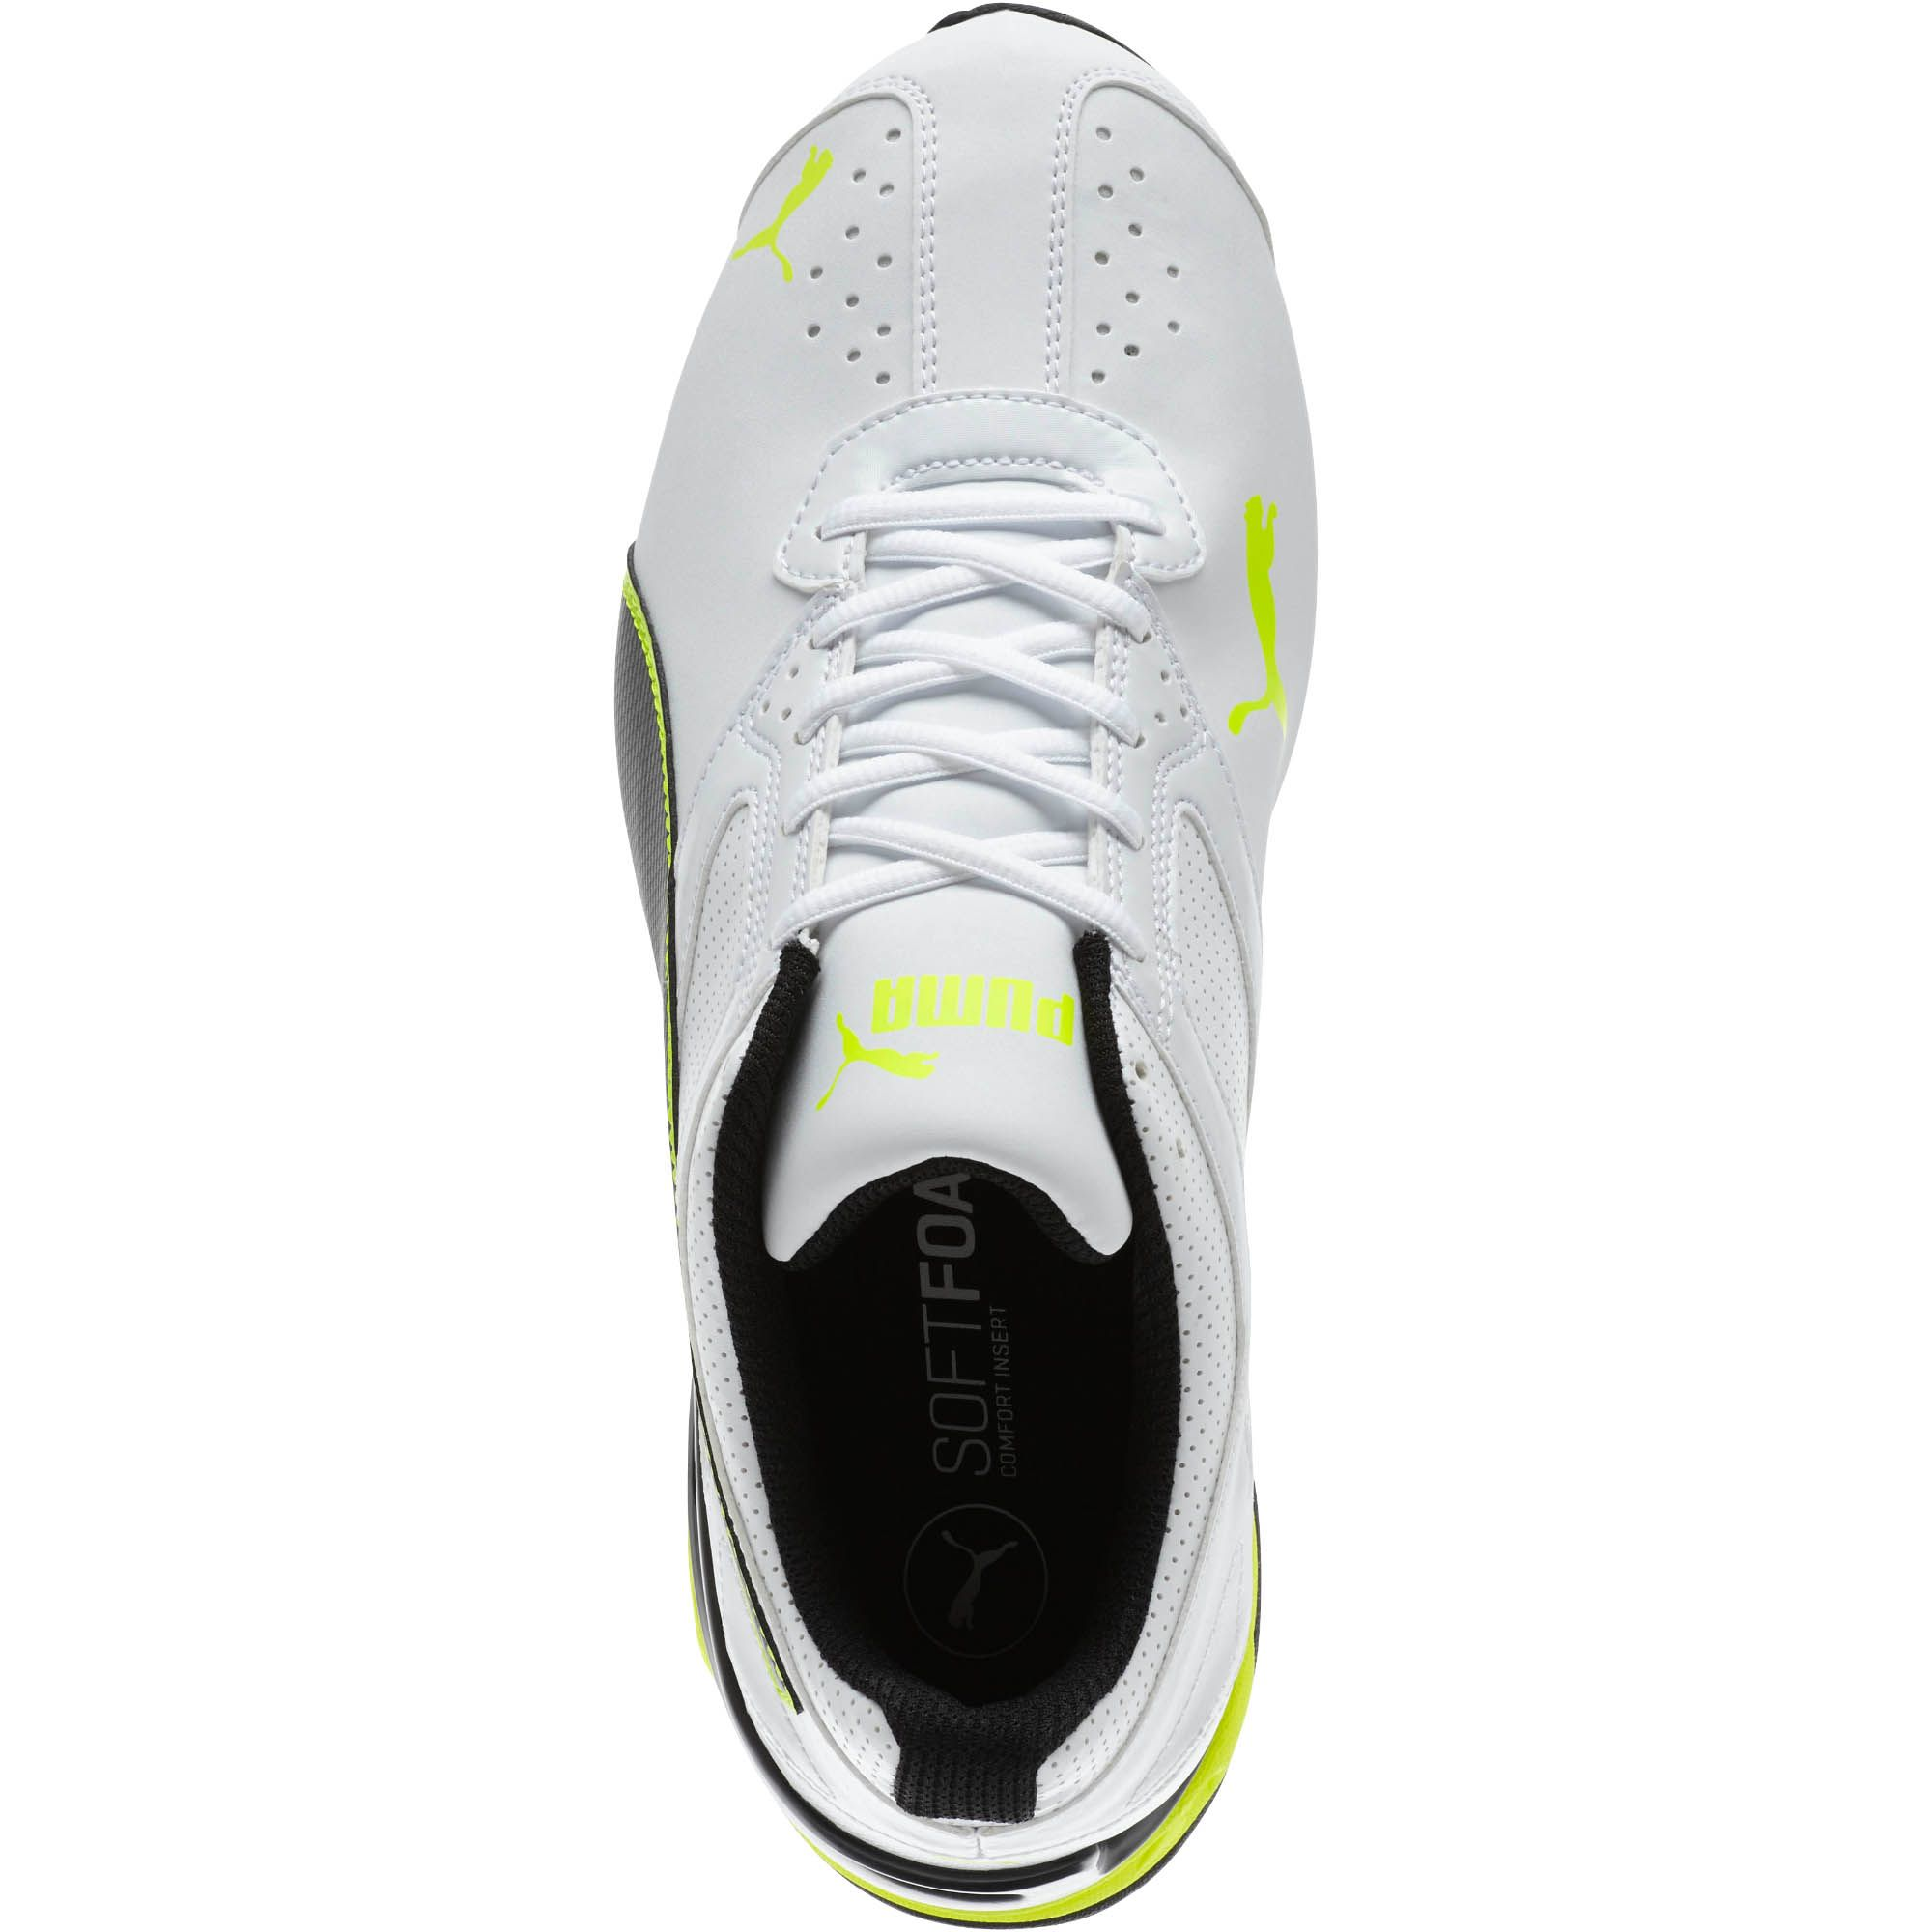 Tazon 6 Fracture Mens Running Shoes